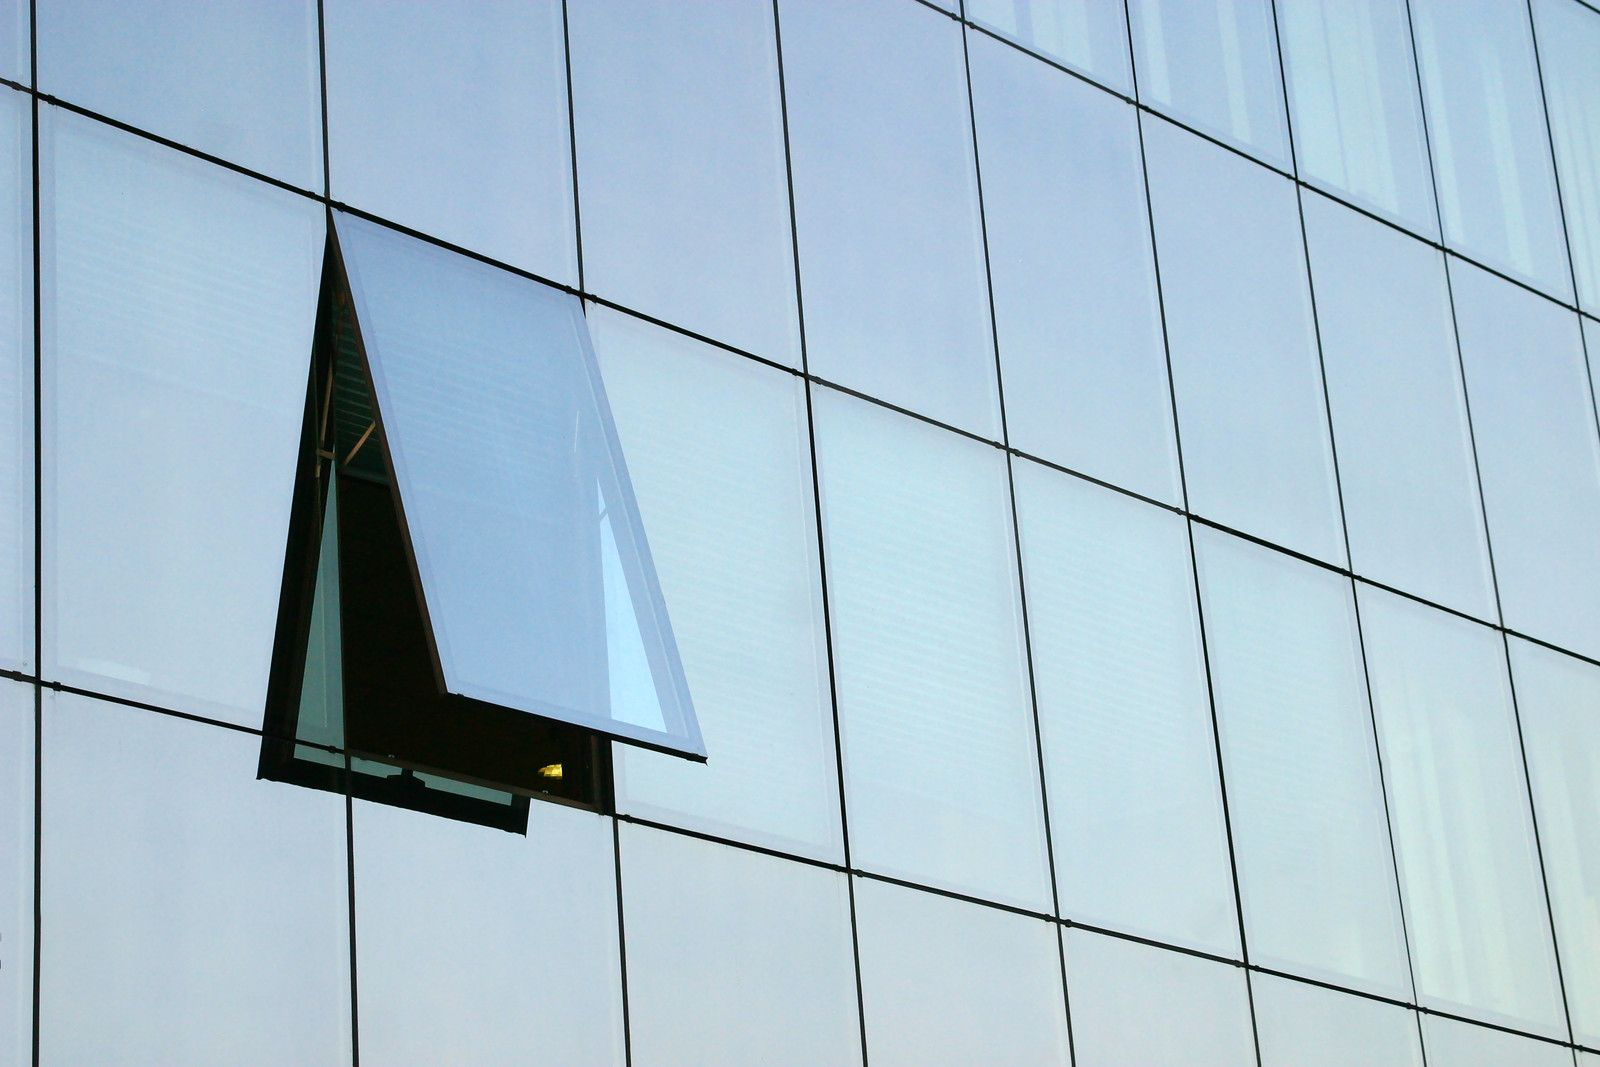 Structurally Glazed Curtain Wall : Structurally glazed curtain wall with operable google